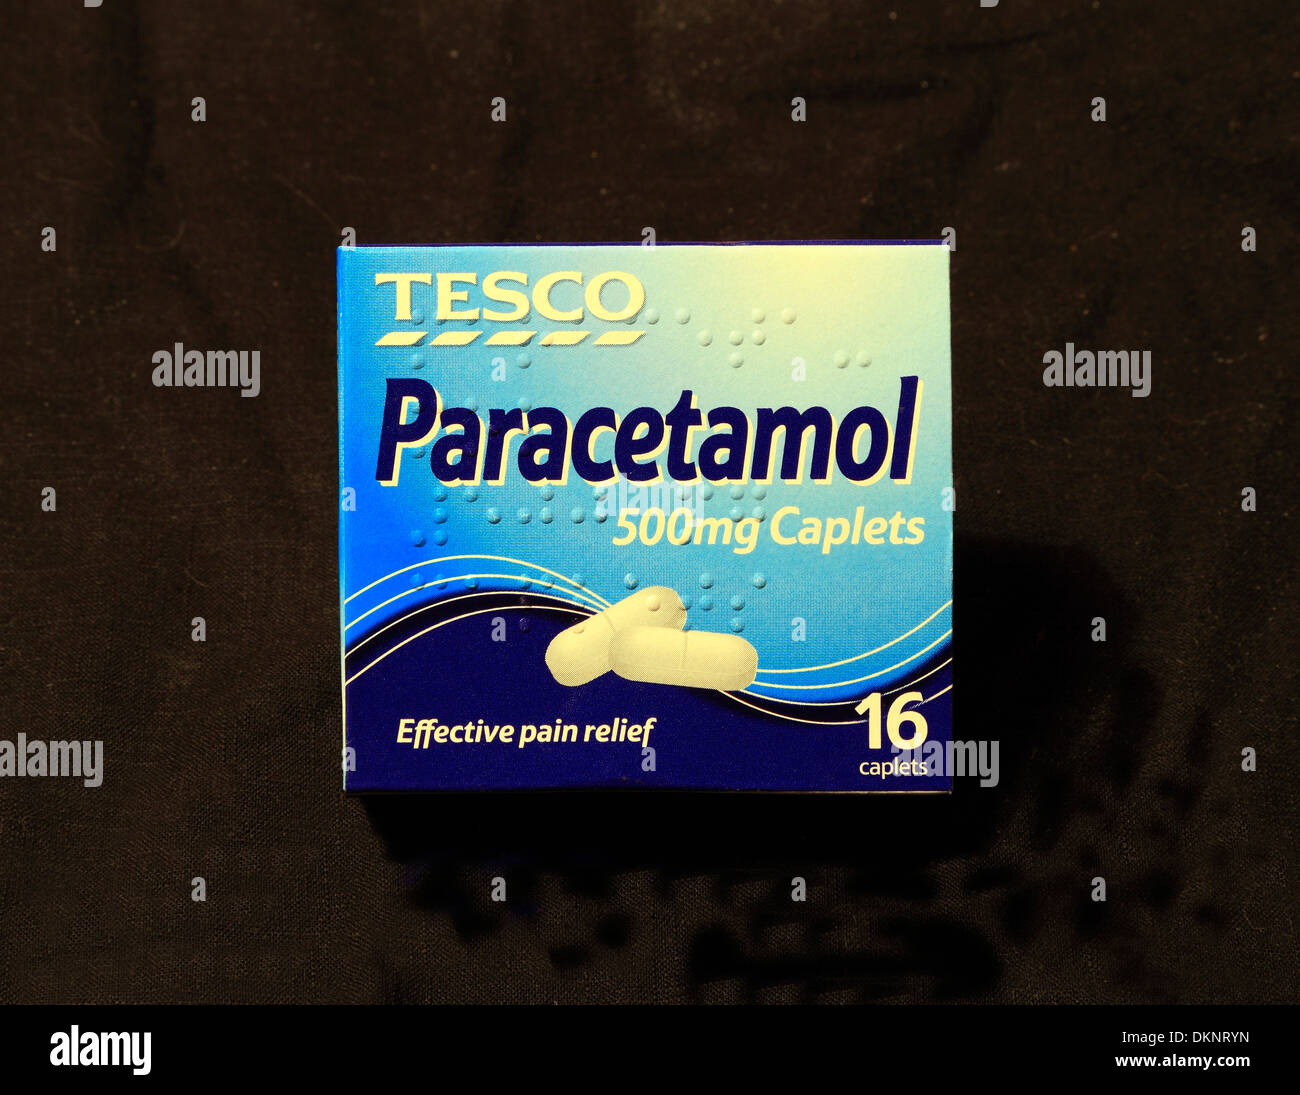 Tesco Paracetamol 500mg comprimés, pack, paquet, boîtes, paquets, comprimé, médecine, médicaments, pain killer killers UK 500 mg mg Photo Stock